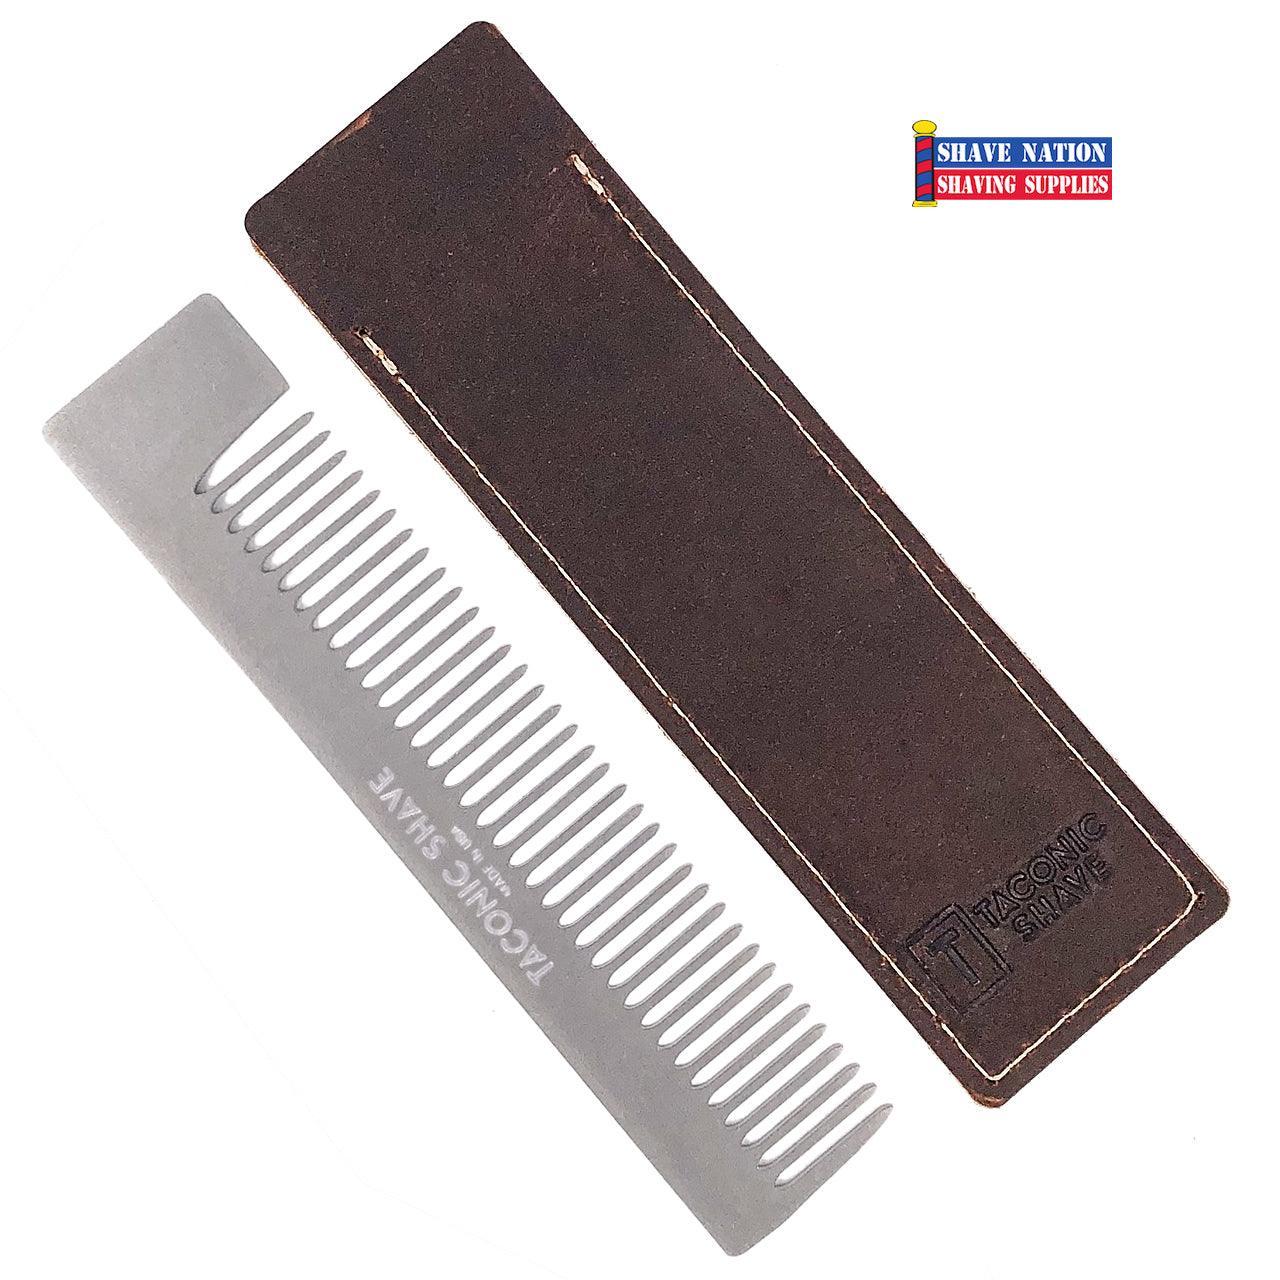 Taconic Stainless Steel Pocket Comb and Sheath